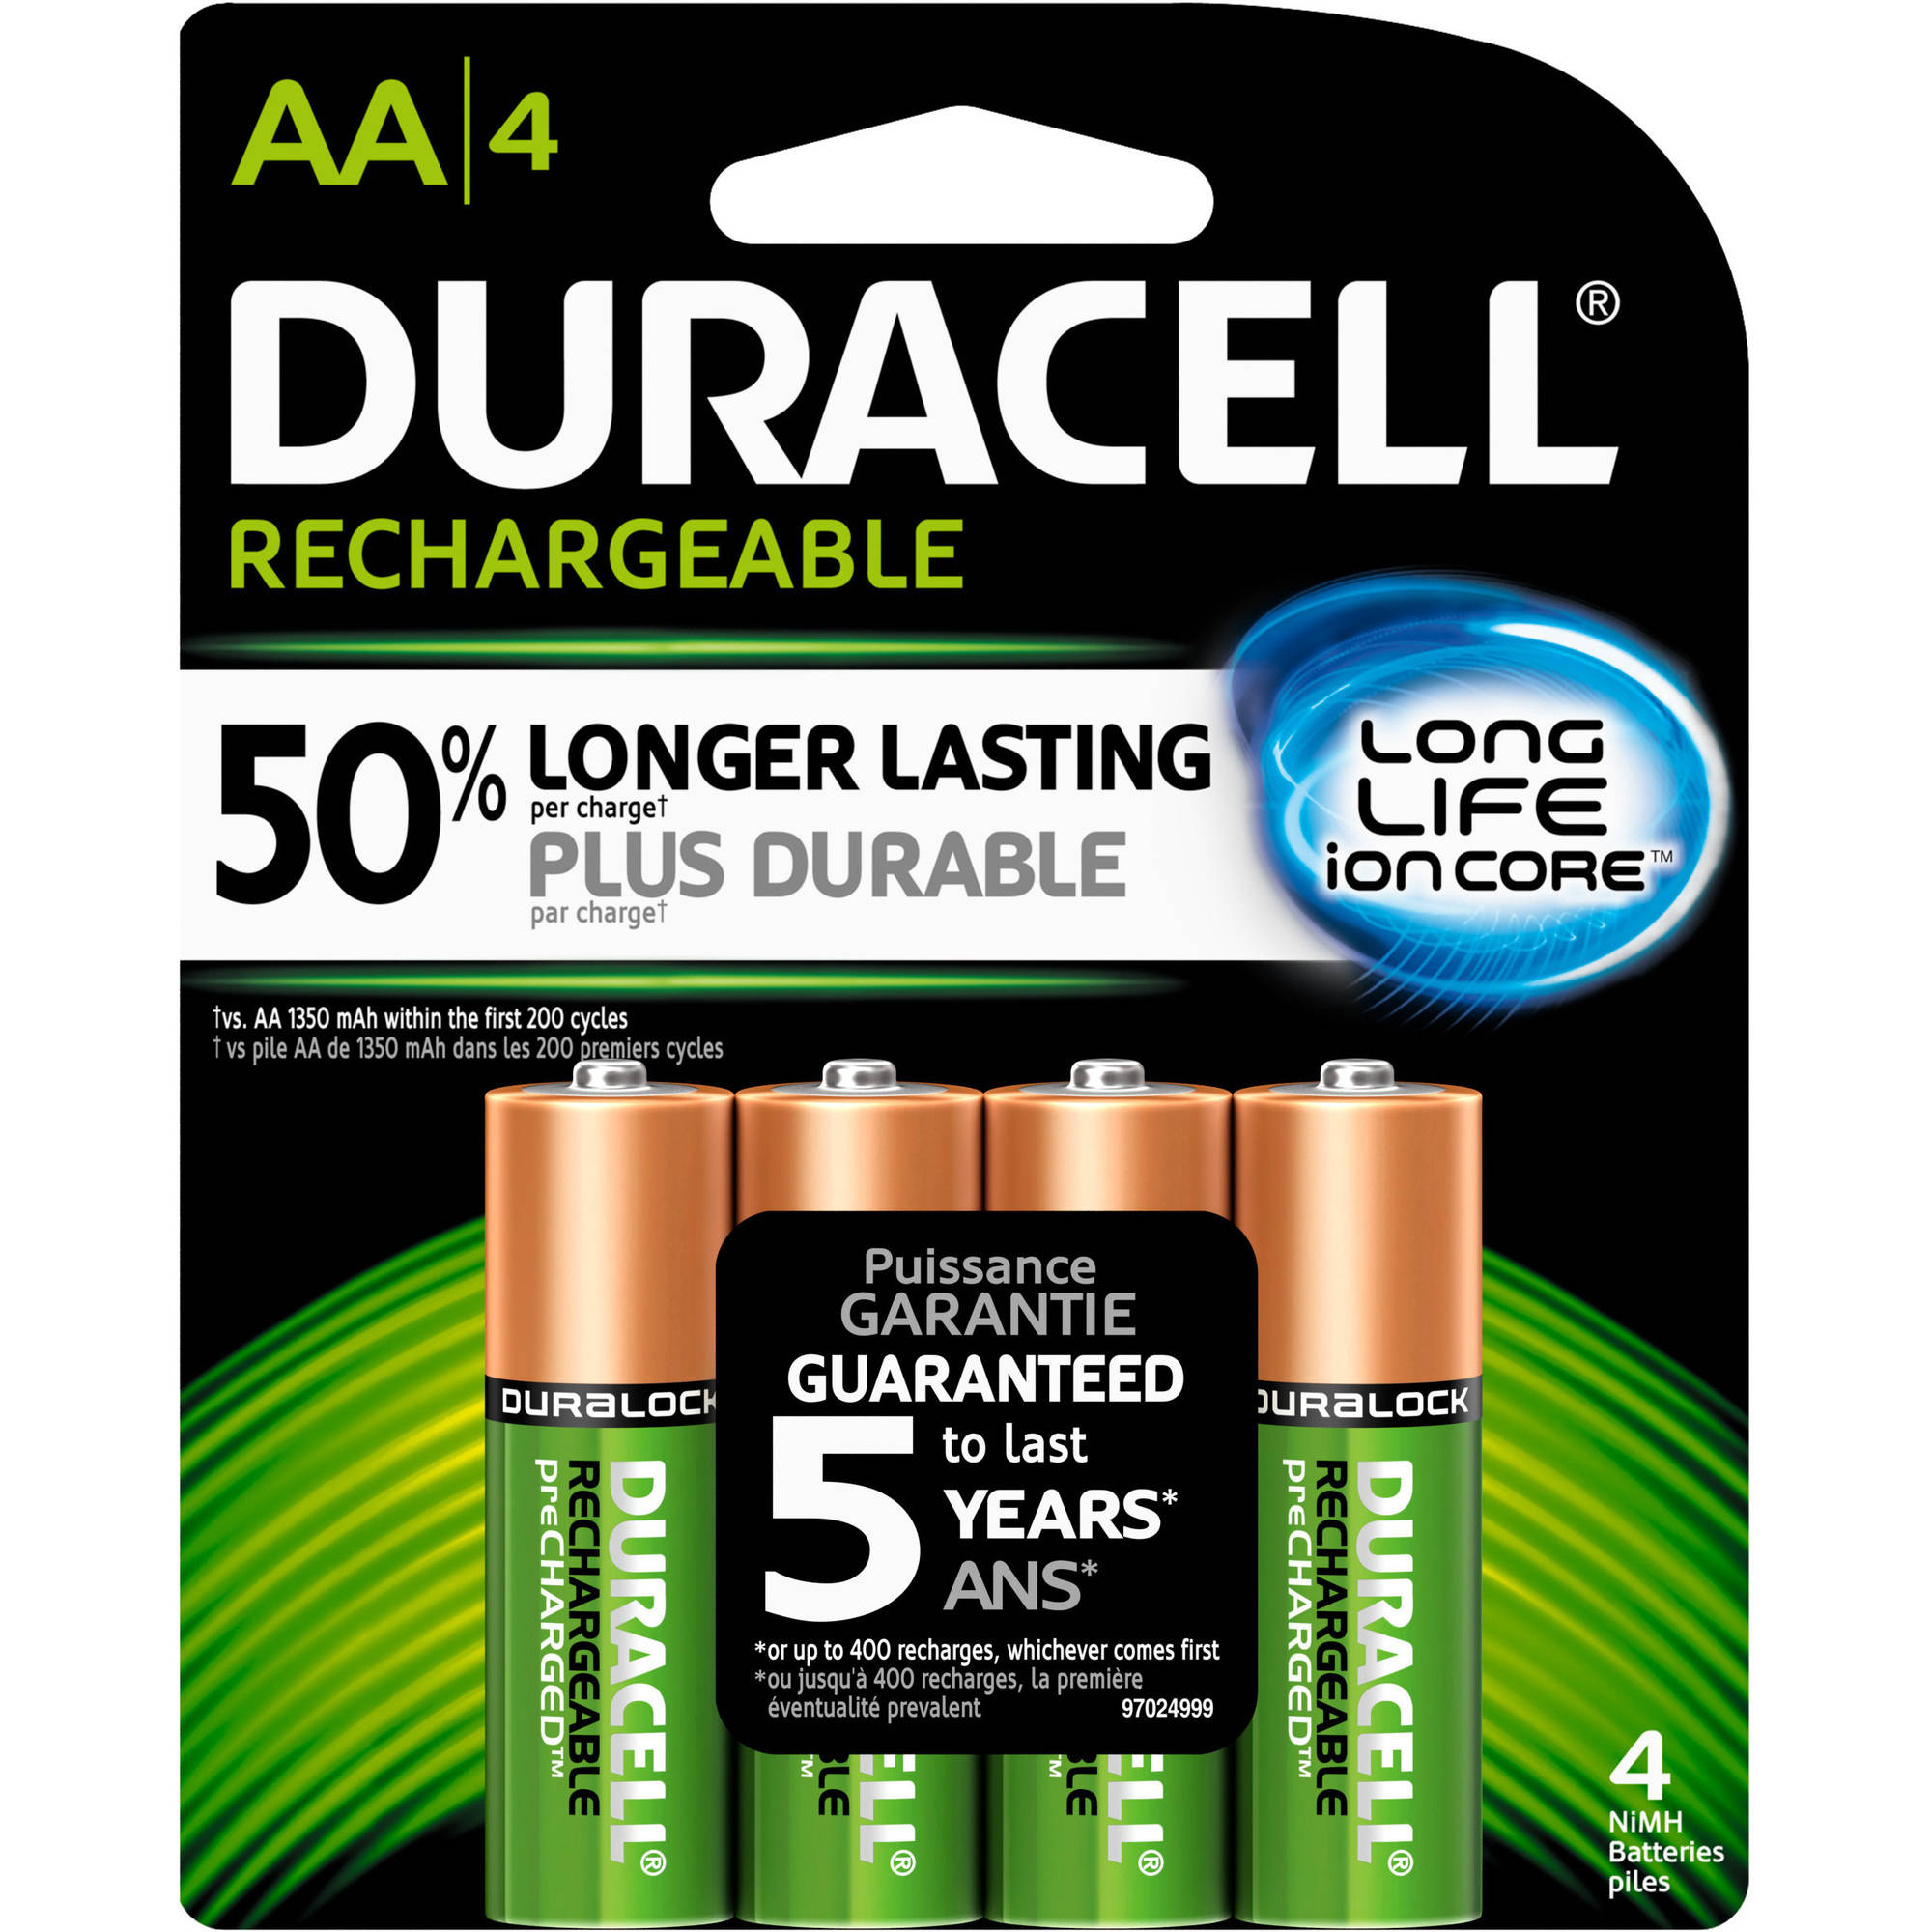 Duracell Rechargeable AA Pre-Charged Household Batteries